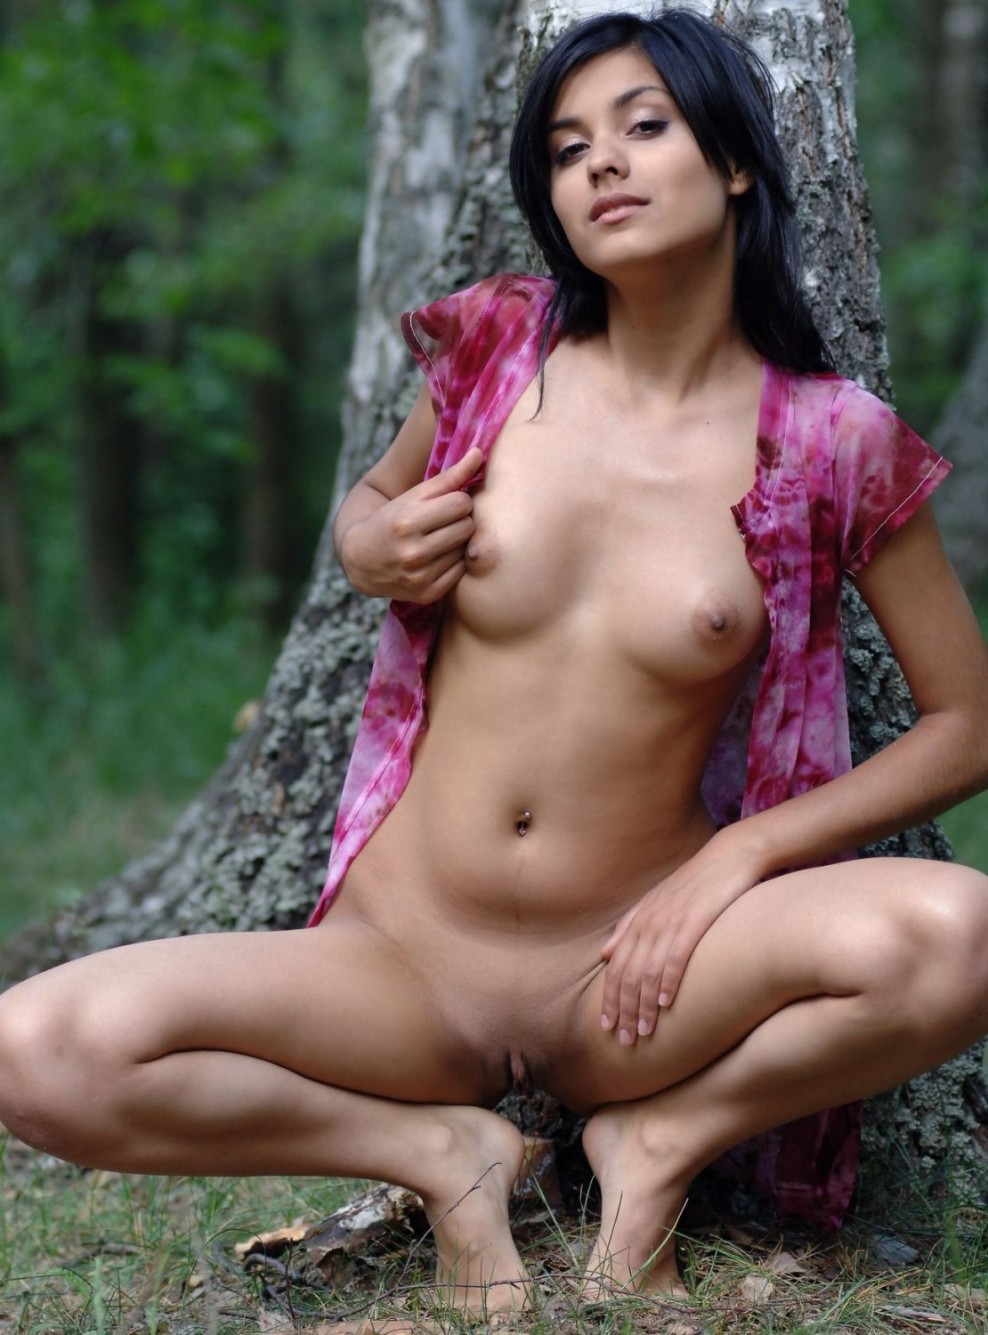 Tit pakistani porn beauiful girl morgan